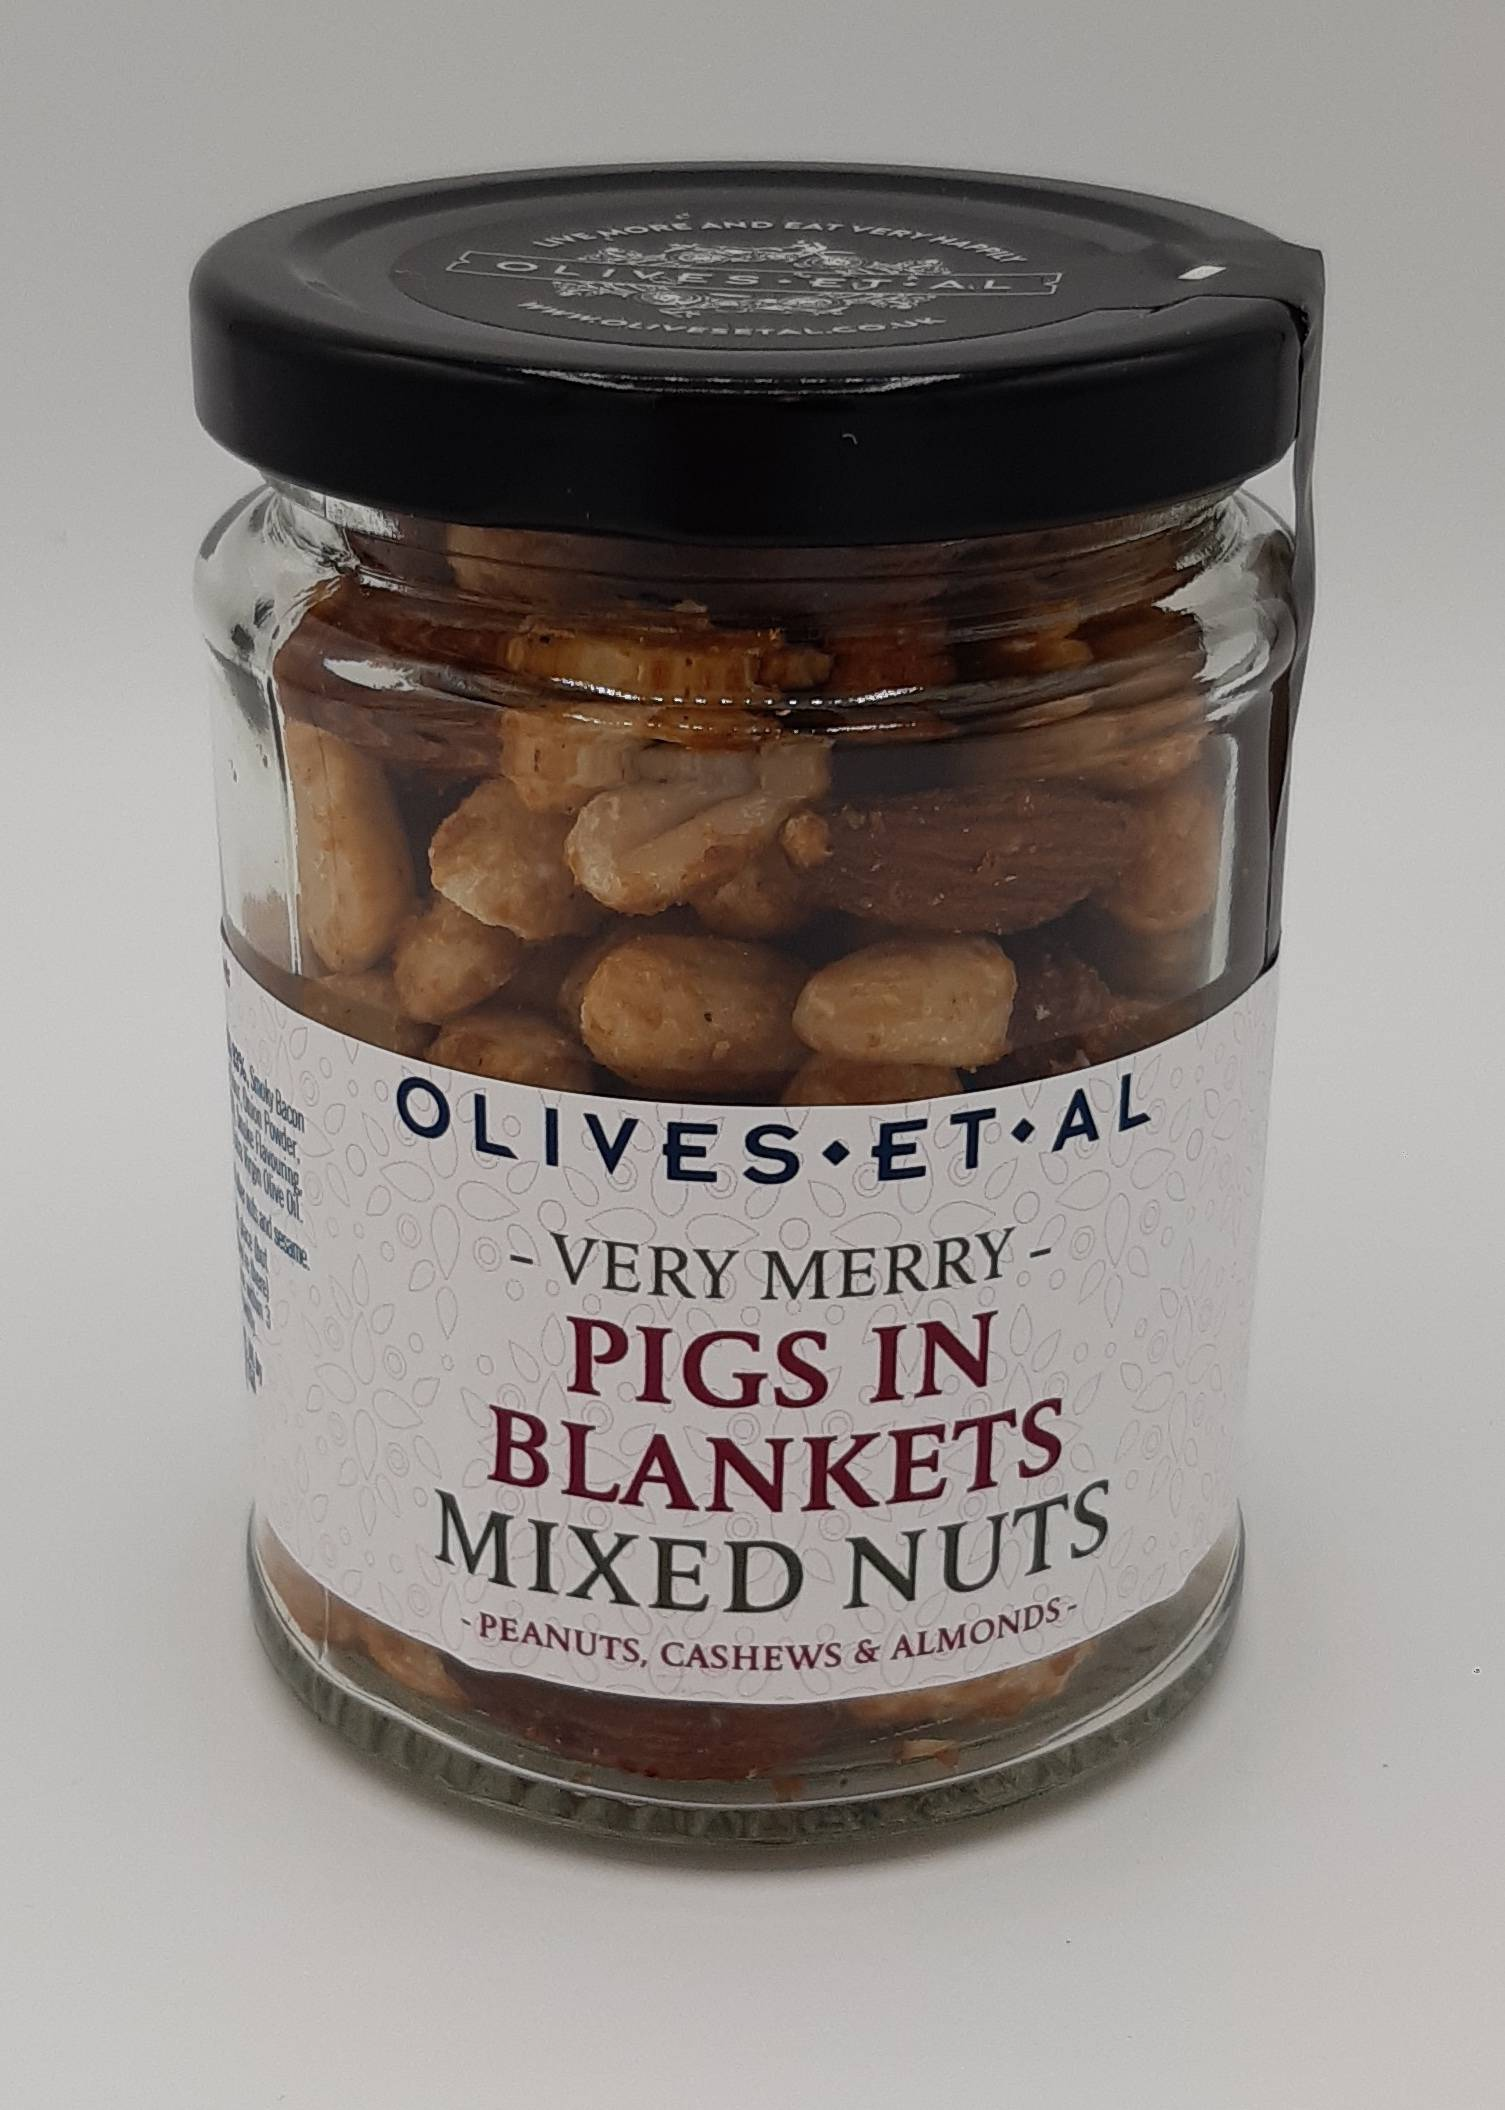 Olives et Al Pigs in Blankets Mixed Nuts Nuts